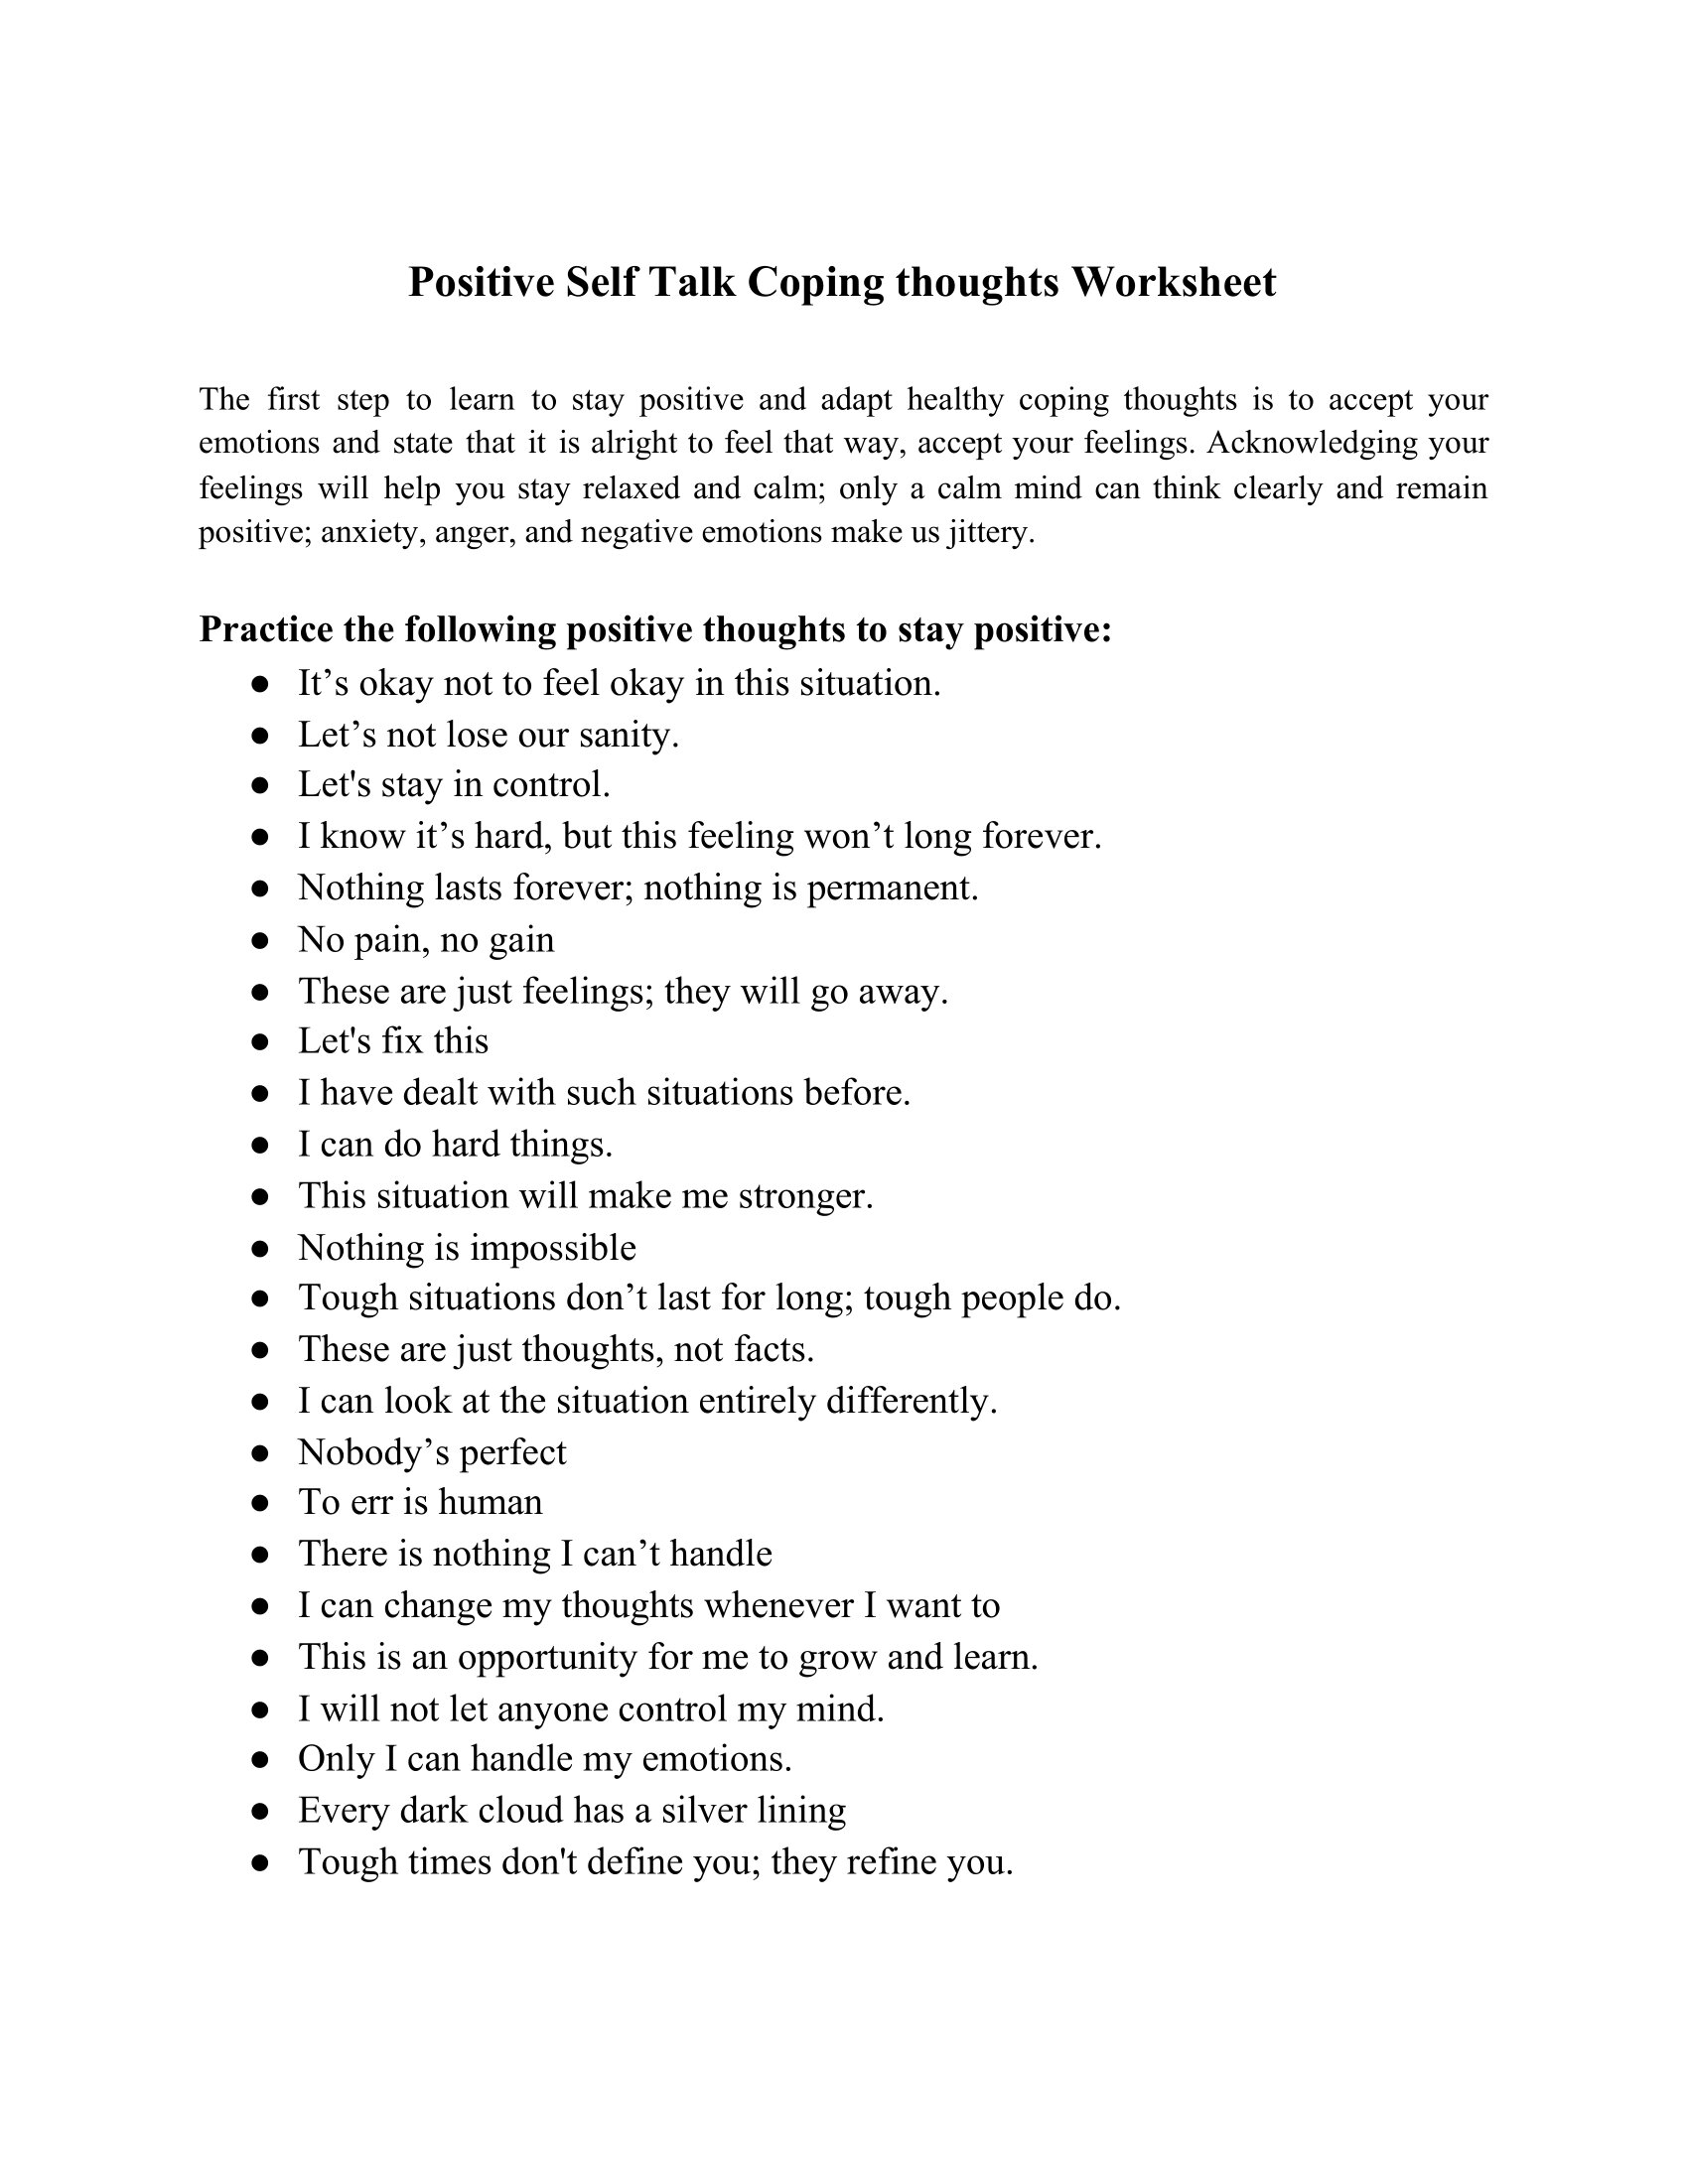 Positive Self Talk Coping Thoughts Worksheet